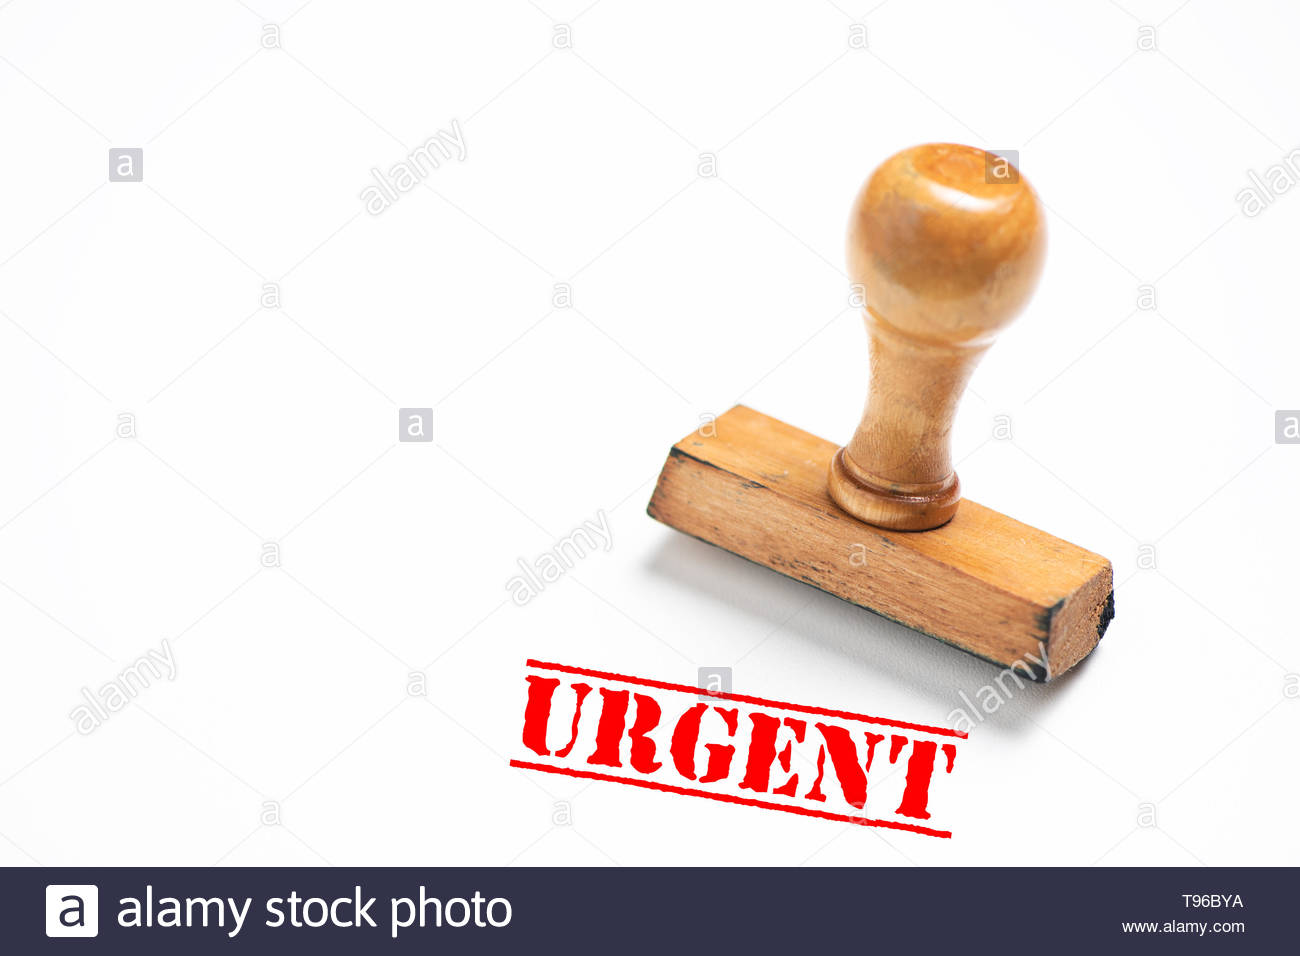 Rubber stamp with urgent sign on white background. Close up - Stock Image